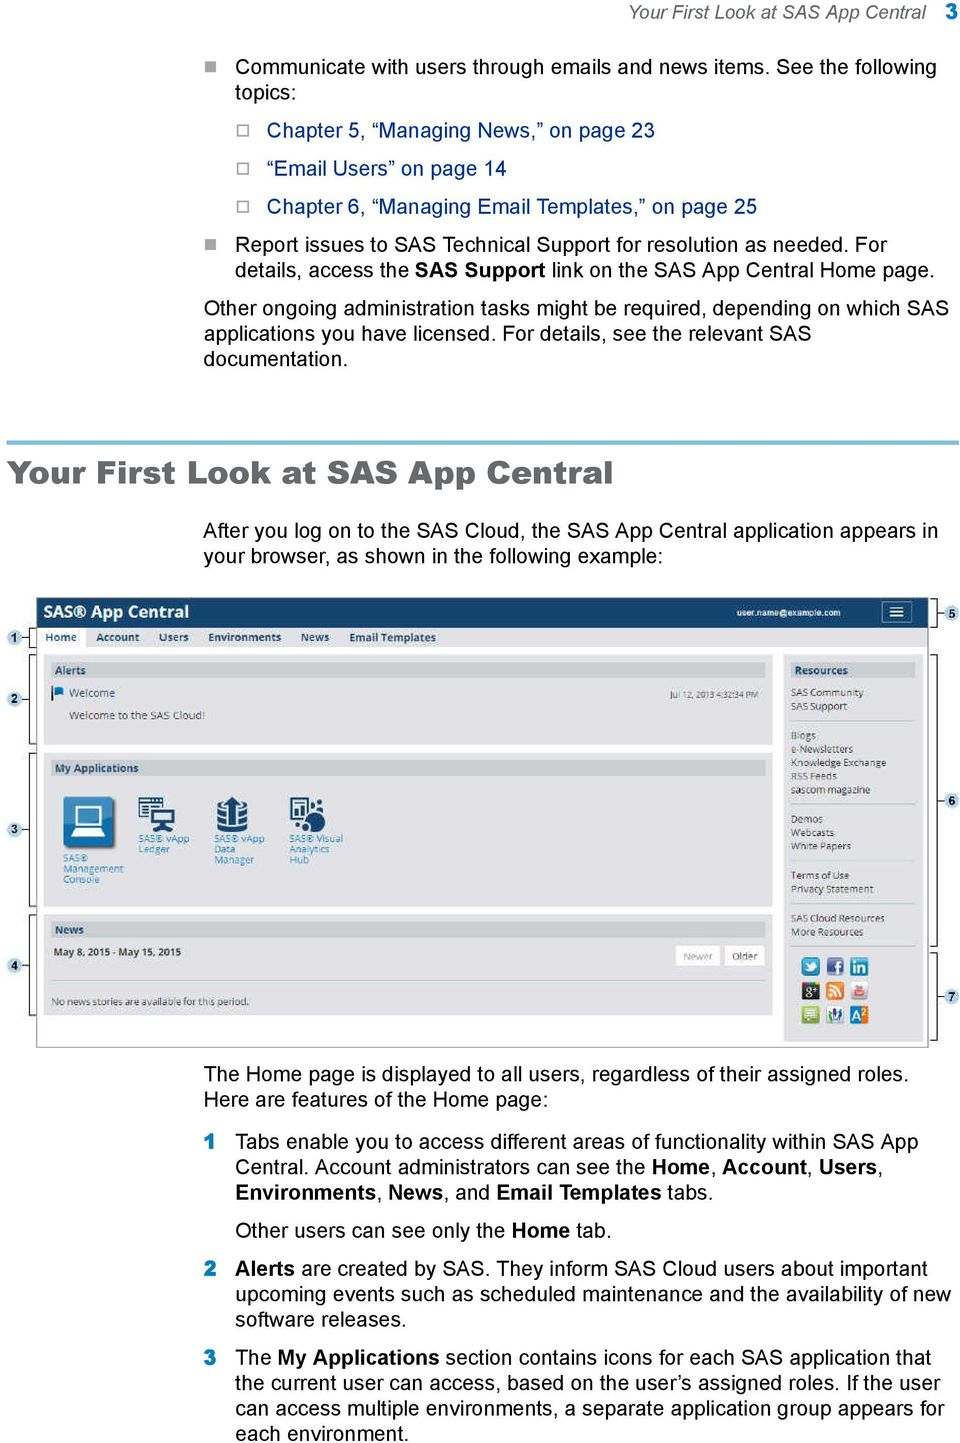 needed. For details, access the SAS Support link on the SAS App Central Home page. Other ongoing administration tasks might be required, depending on which SAS applications you have licensed.